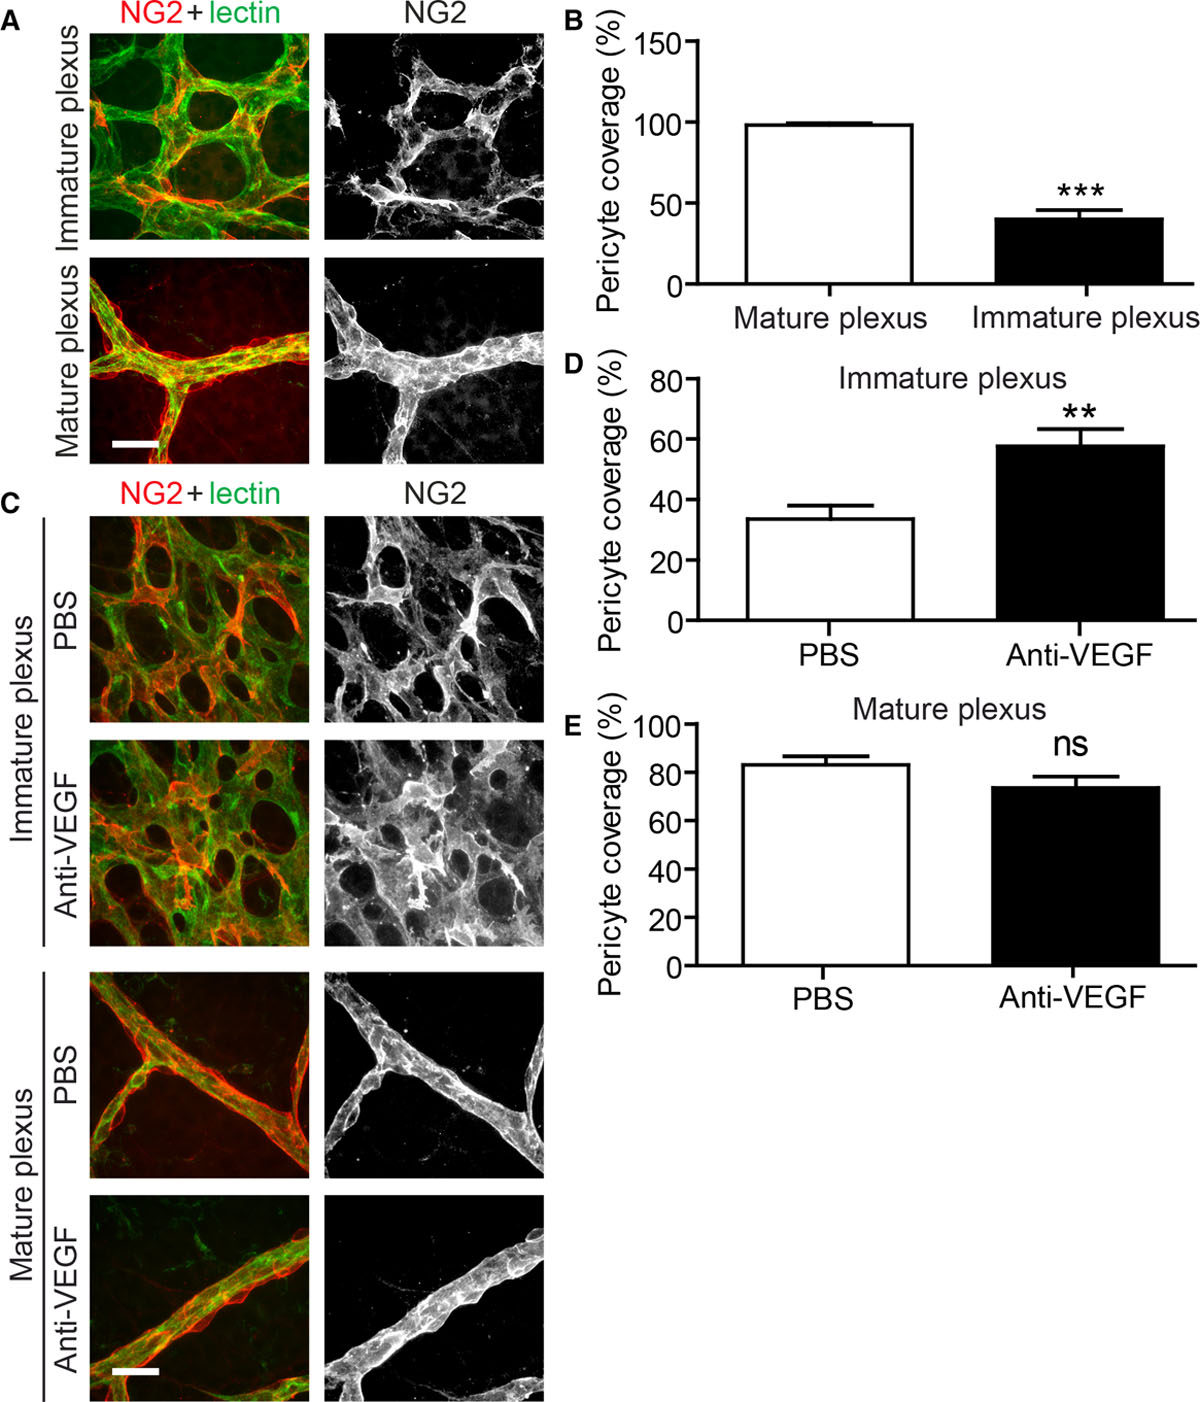 Weibel-Palade Bodies Orchestrate Pericytes During